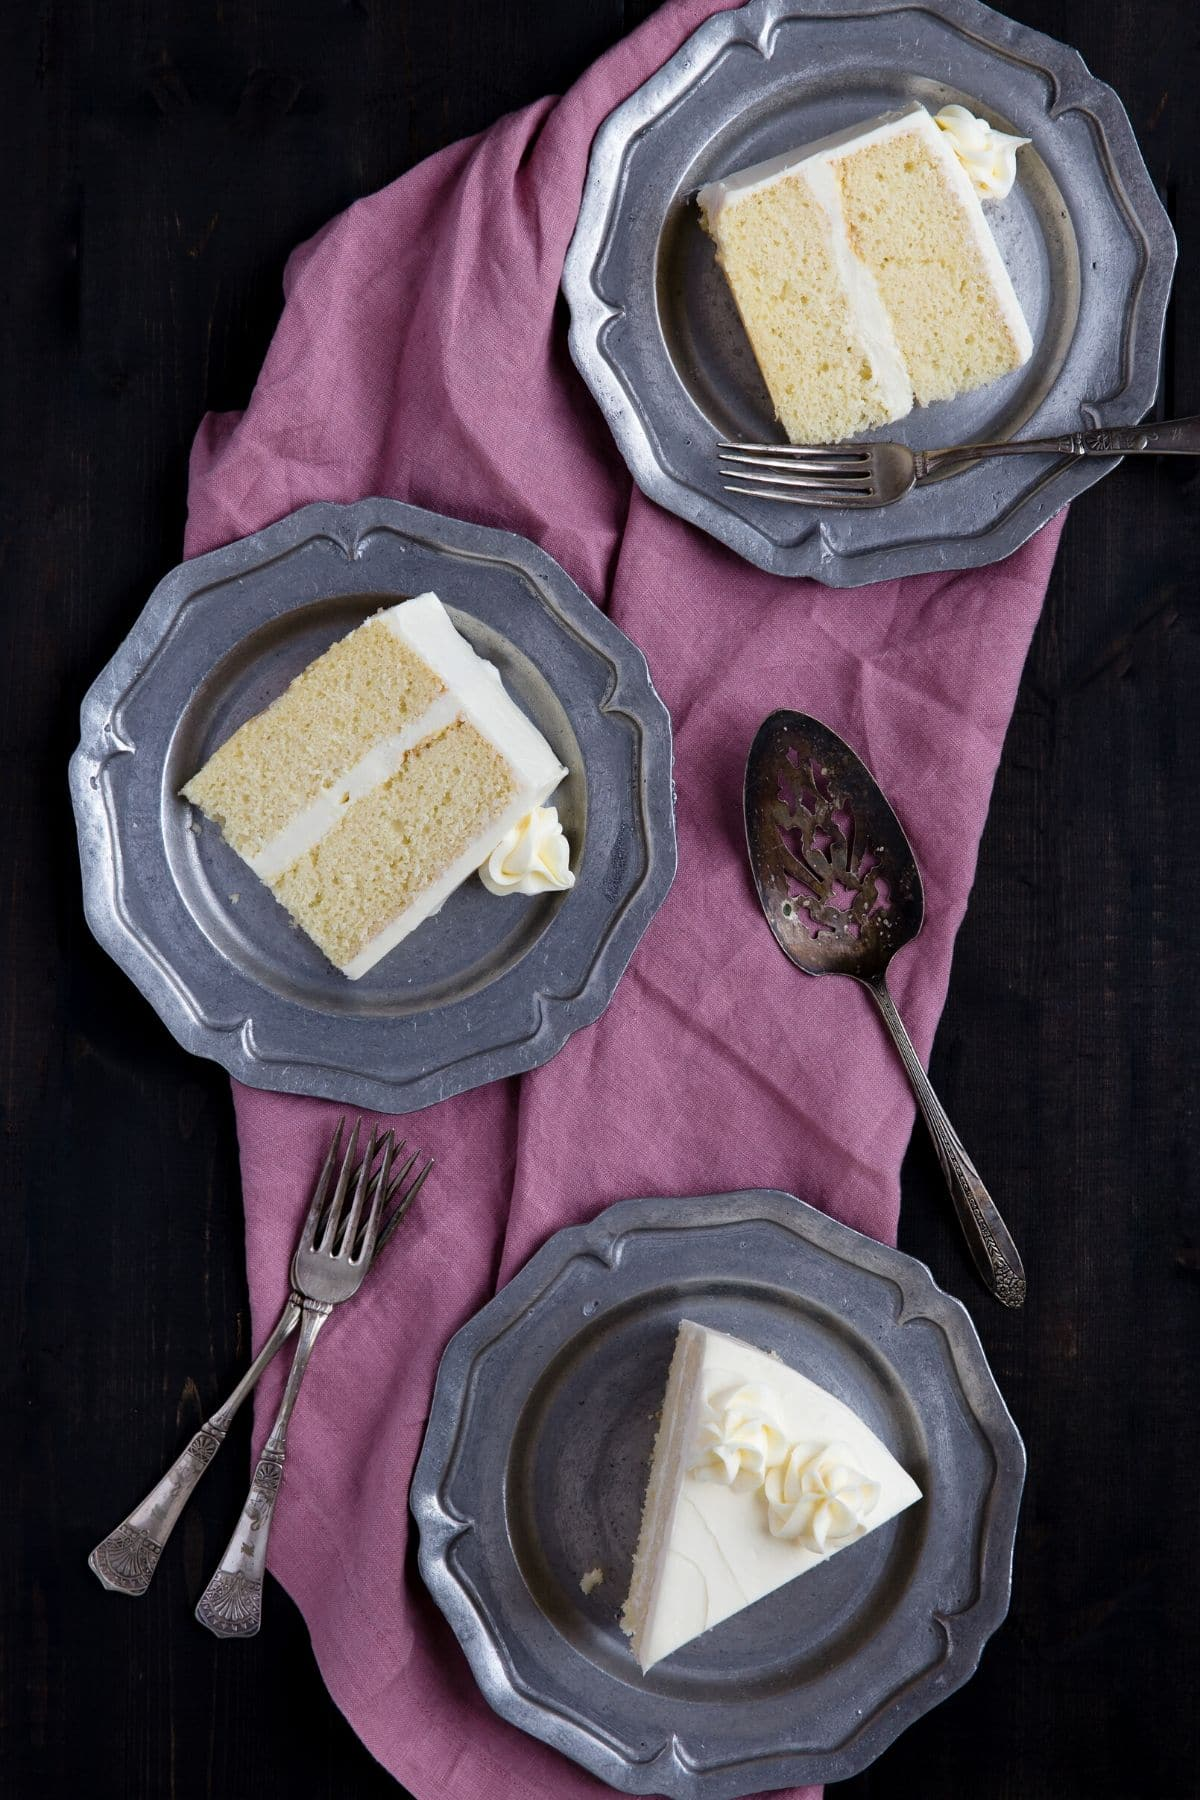 Three pewter plates with a slice of basic vanilla cake on each one.